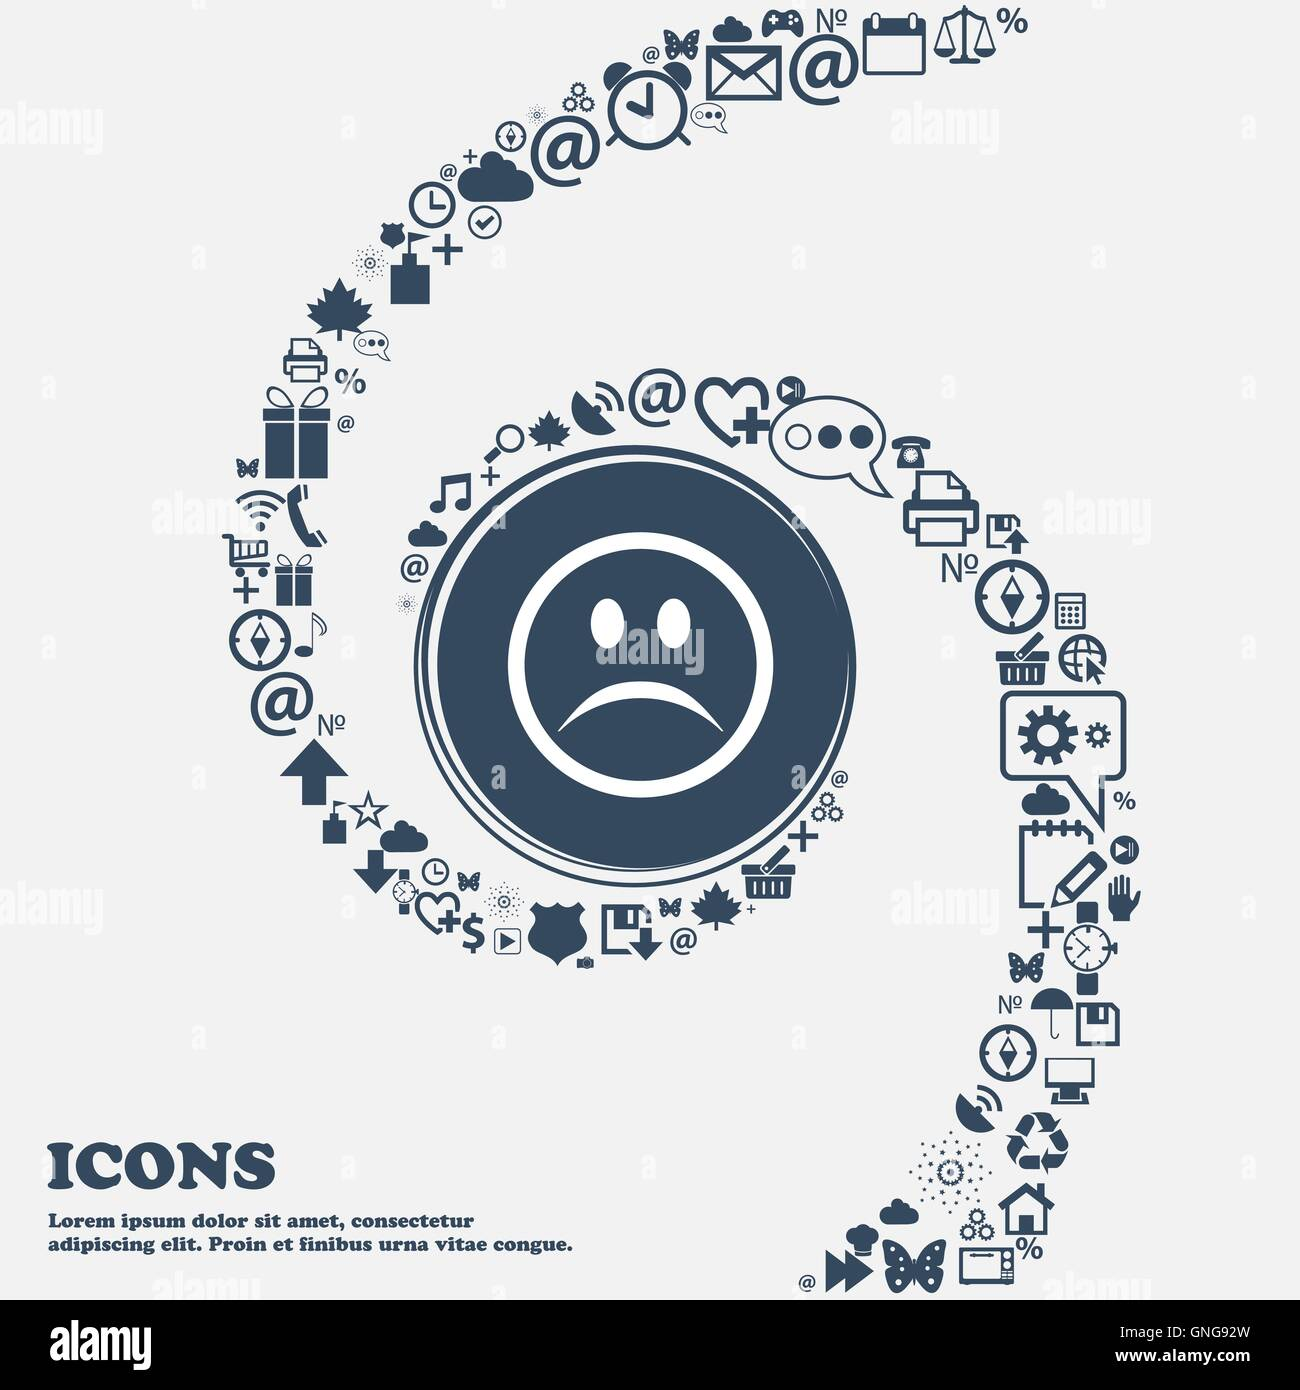 Sad Face Sadness Depression Icon Sign In The Center Around The